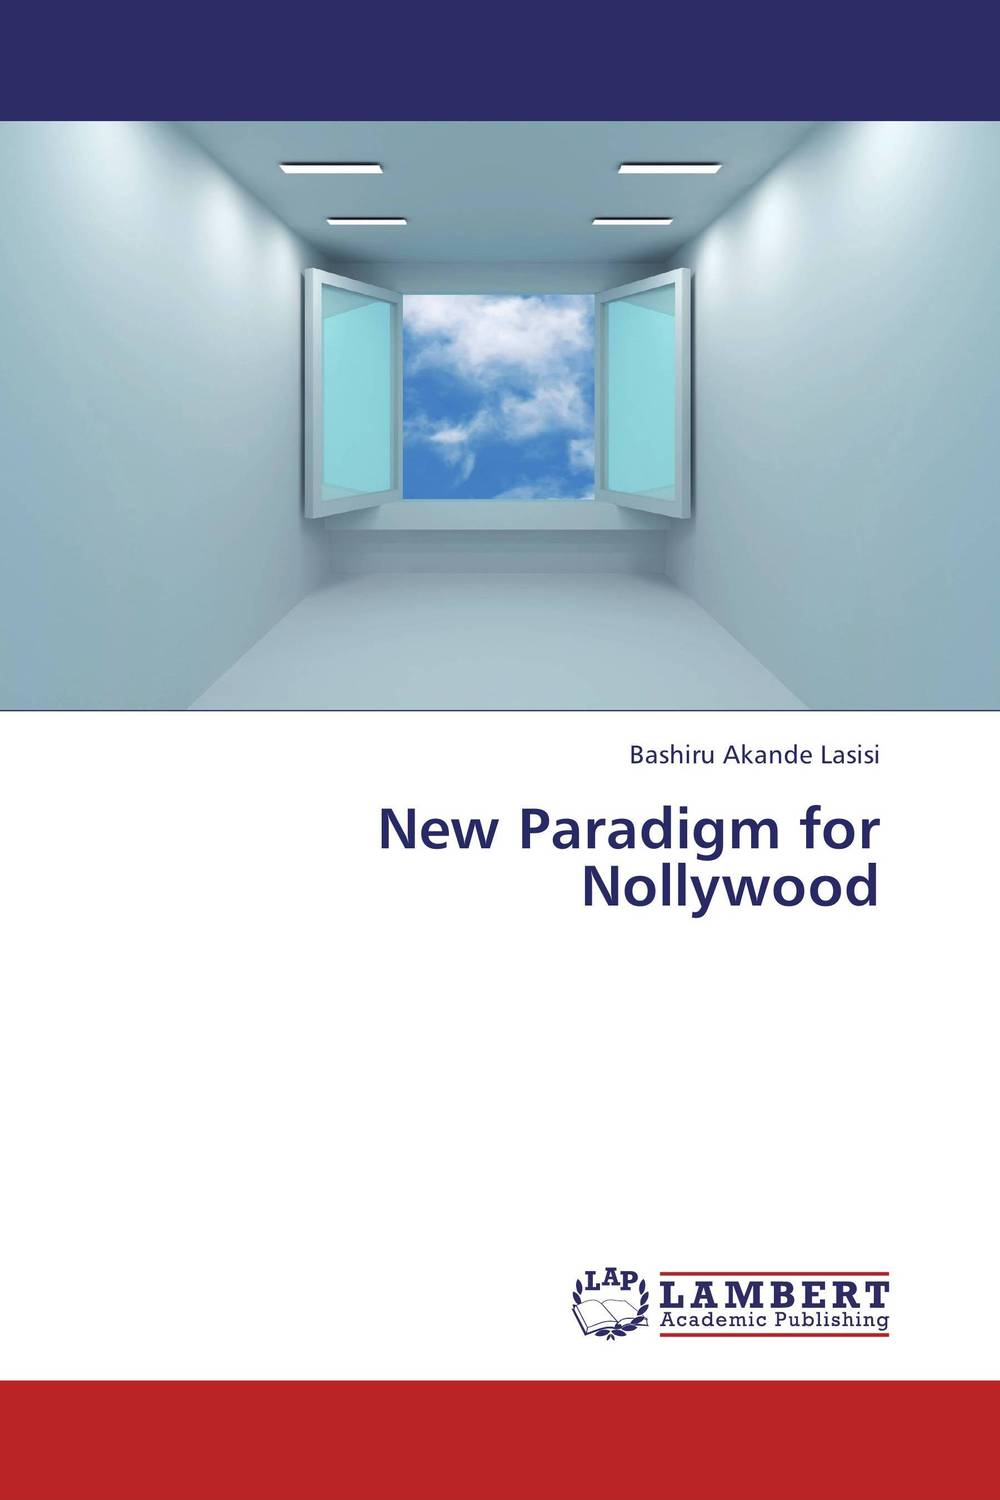 New Paradigm for Nollywood